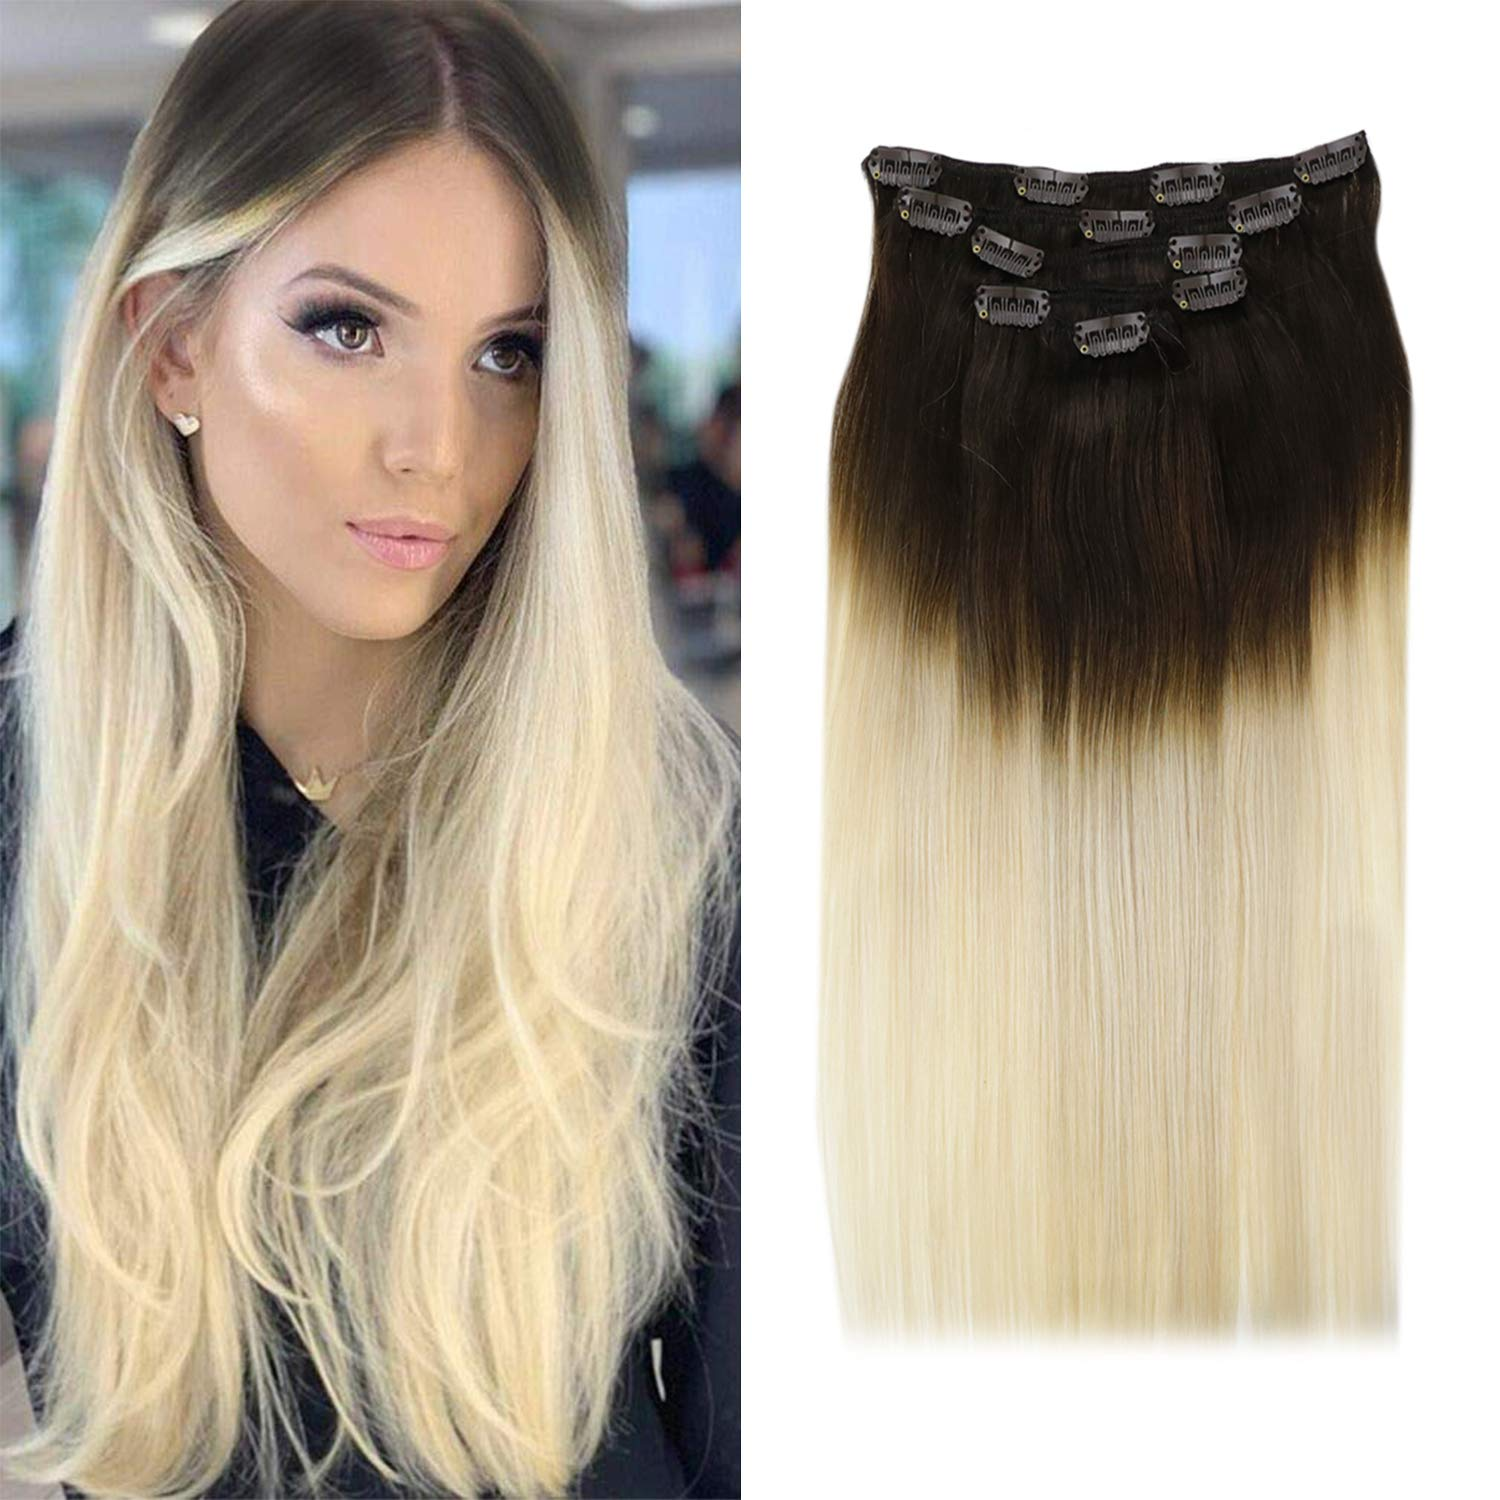 [20% OFF]LaaVoo Real Human Hair Clip in Extensions Silky Straight Hair Extensions Ombre Dark Brown Fading to Platinum Blonde Double Weft 5 Pieces Clip on Human Hair for Women 14inch 70g/pack(#4/60)